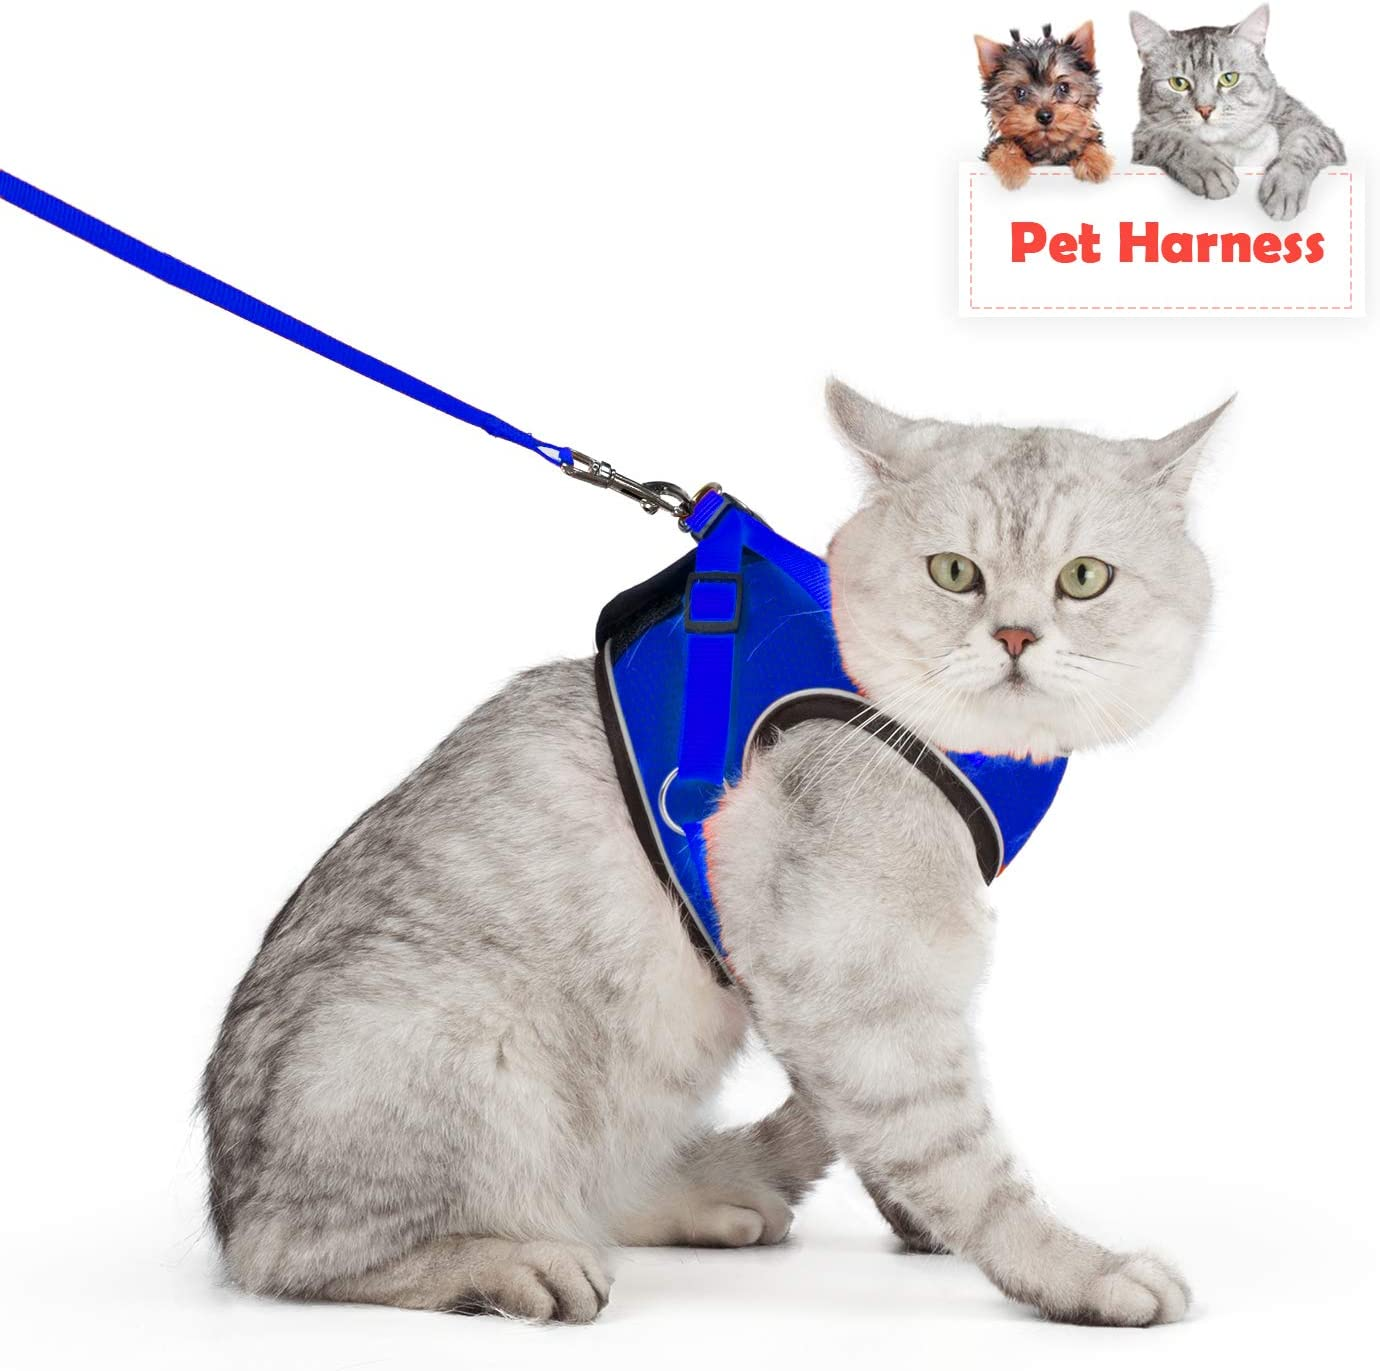 SELMAI Cat Harness and Leash for Walking Escape Proof Mesh Vest Harness for Small Dogs Kitten Puppies Easy on Jacket Padded Cat Vest Stripe Flower Bowknot Design for Walking Outdoor